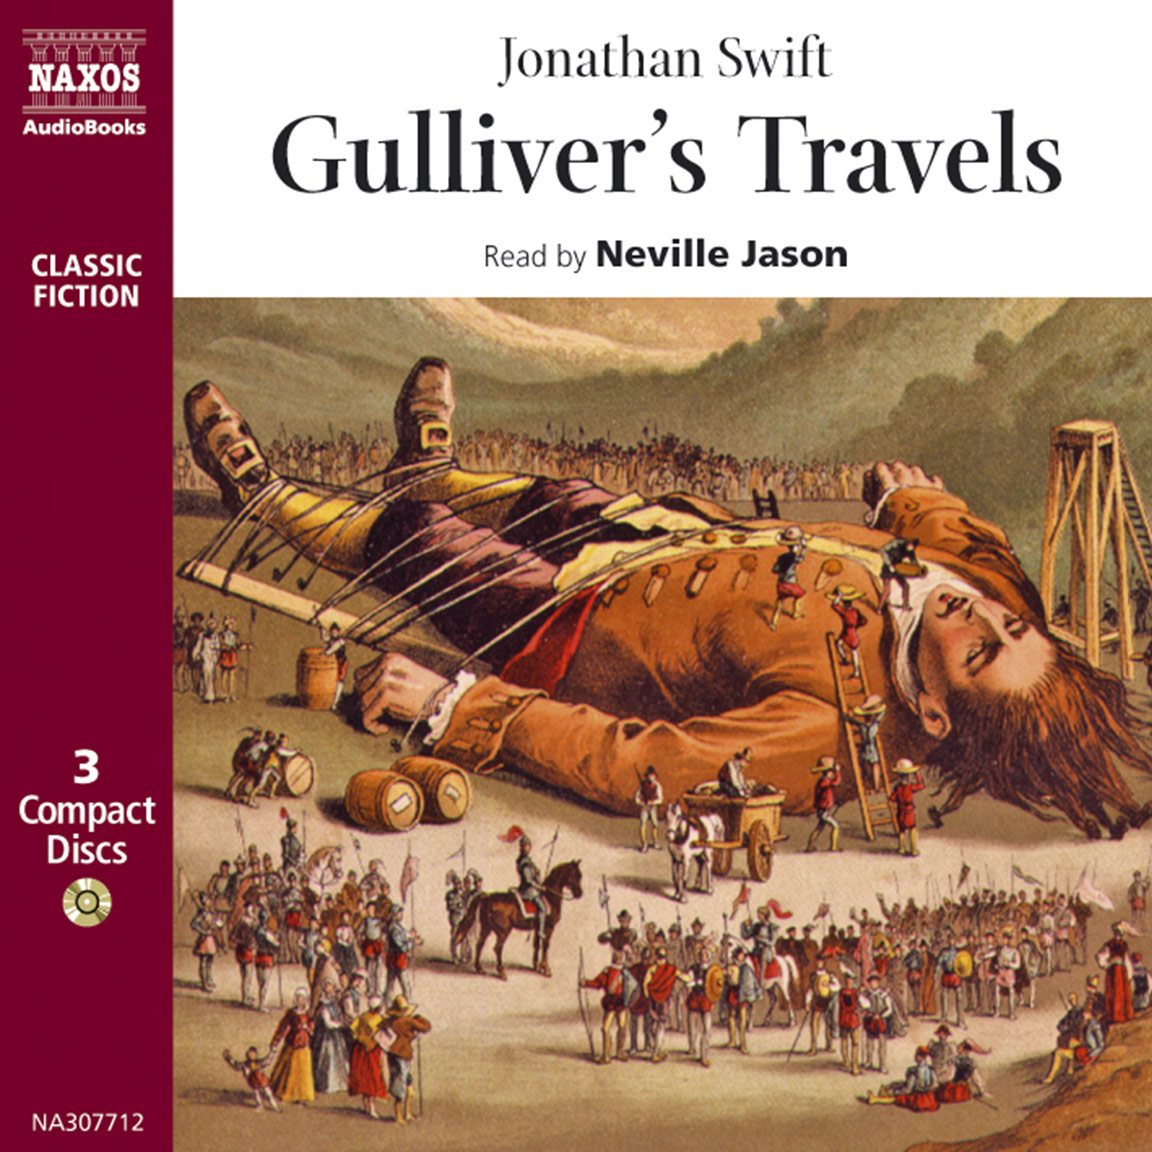 a glimpse into jonathan swifts gullivers travels Gulliver is taken into the capital city by a vast wagon the lilliputians have specially built he is presented to the emperor, who is entertained by gulliver, just as gulliver is flattered by the attention of royalty.